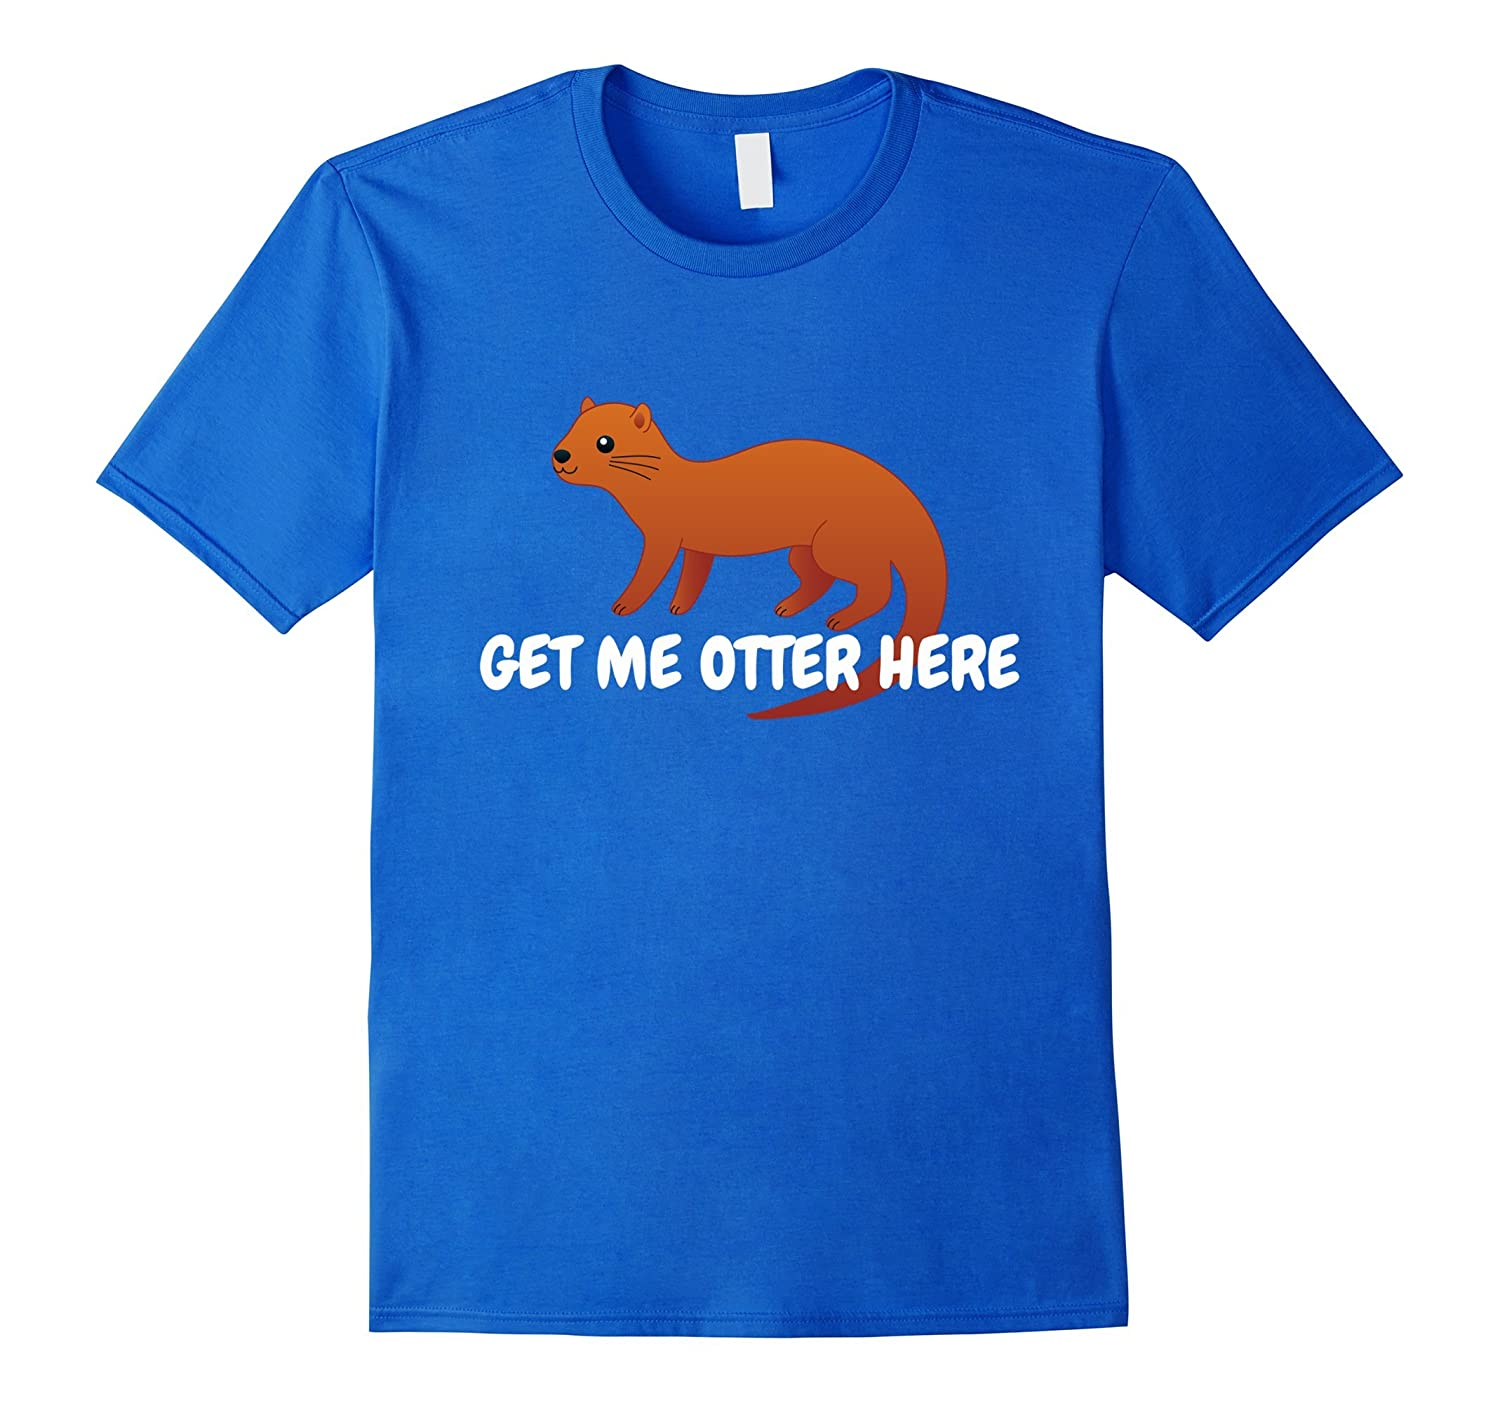 d0a25fca97 Get Me Otter Here T-Shirt – Funny Outta Here Pun Cute Tee-Vaci – Vaciuk